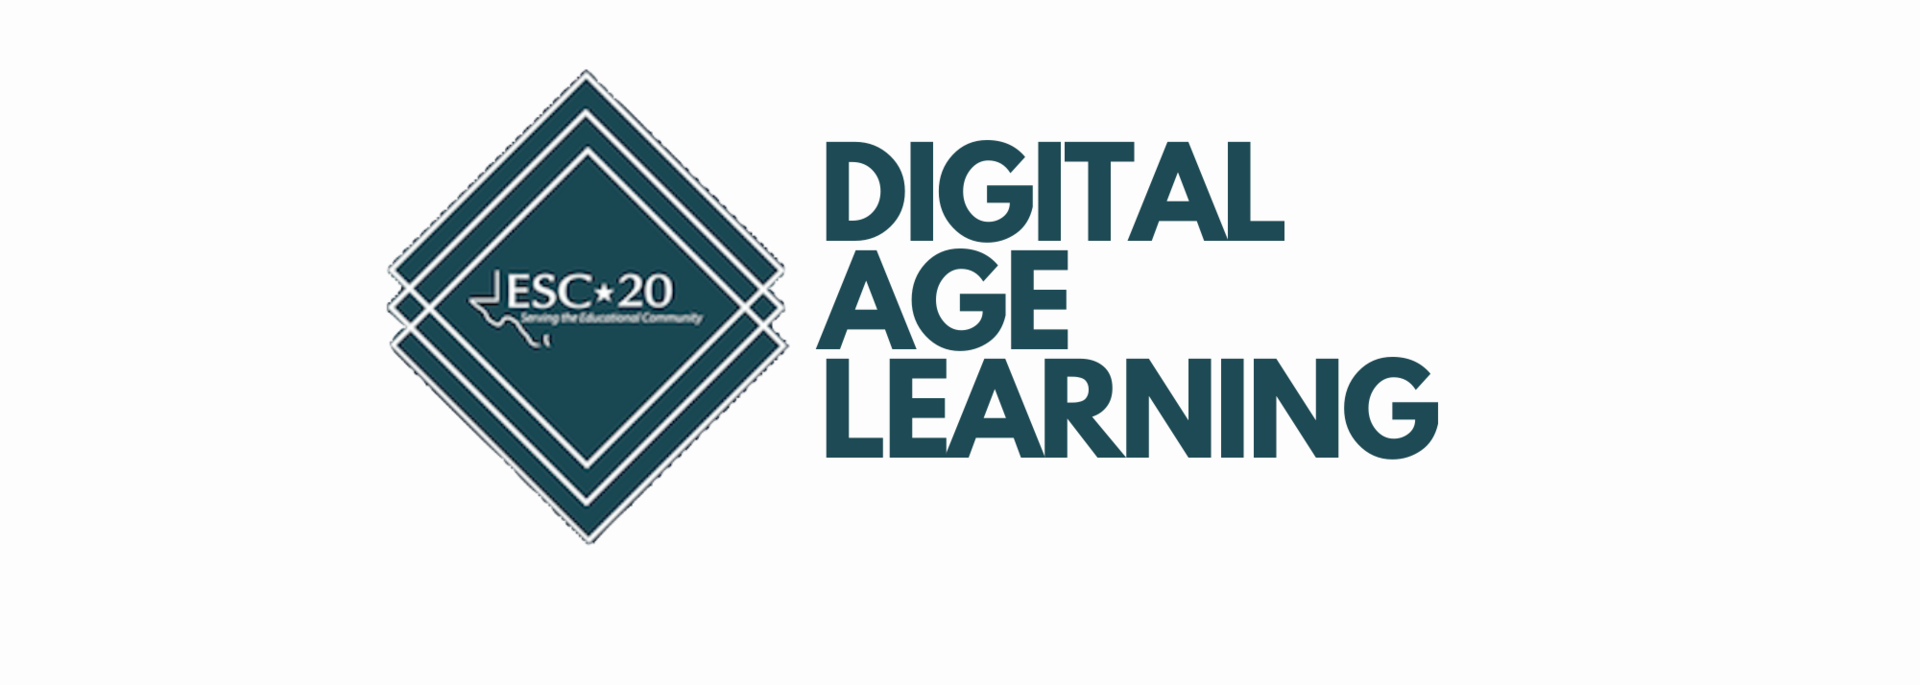 Digital Age Learning Logo